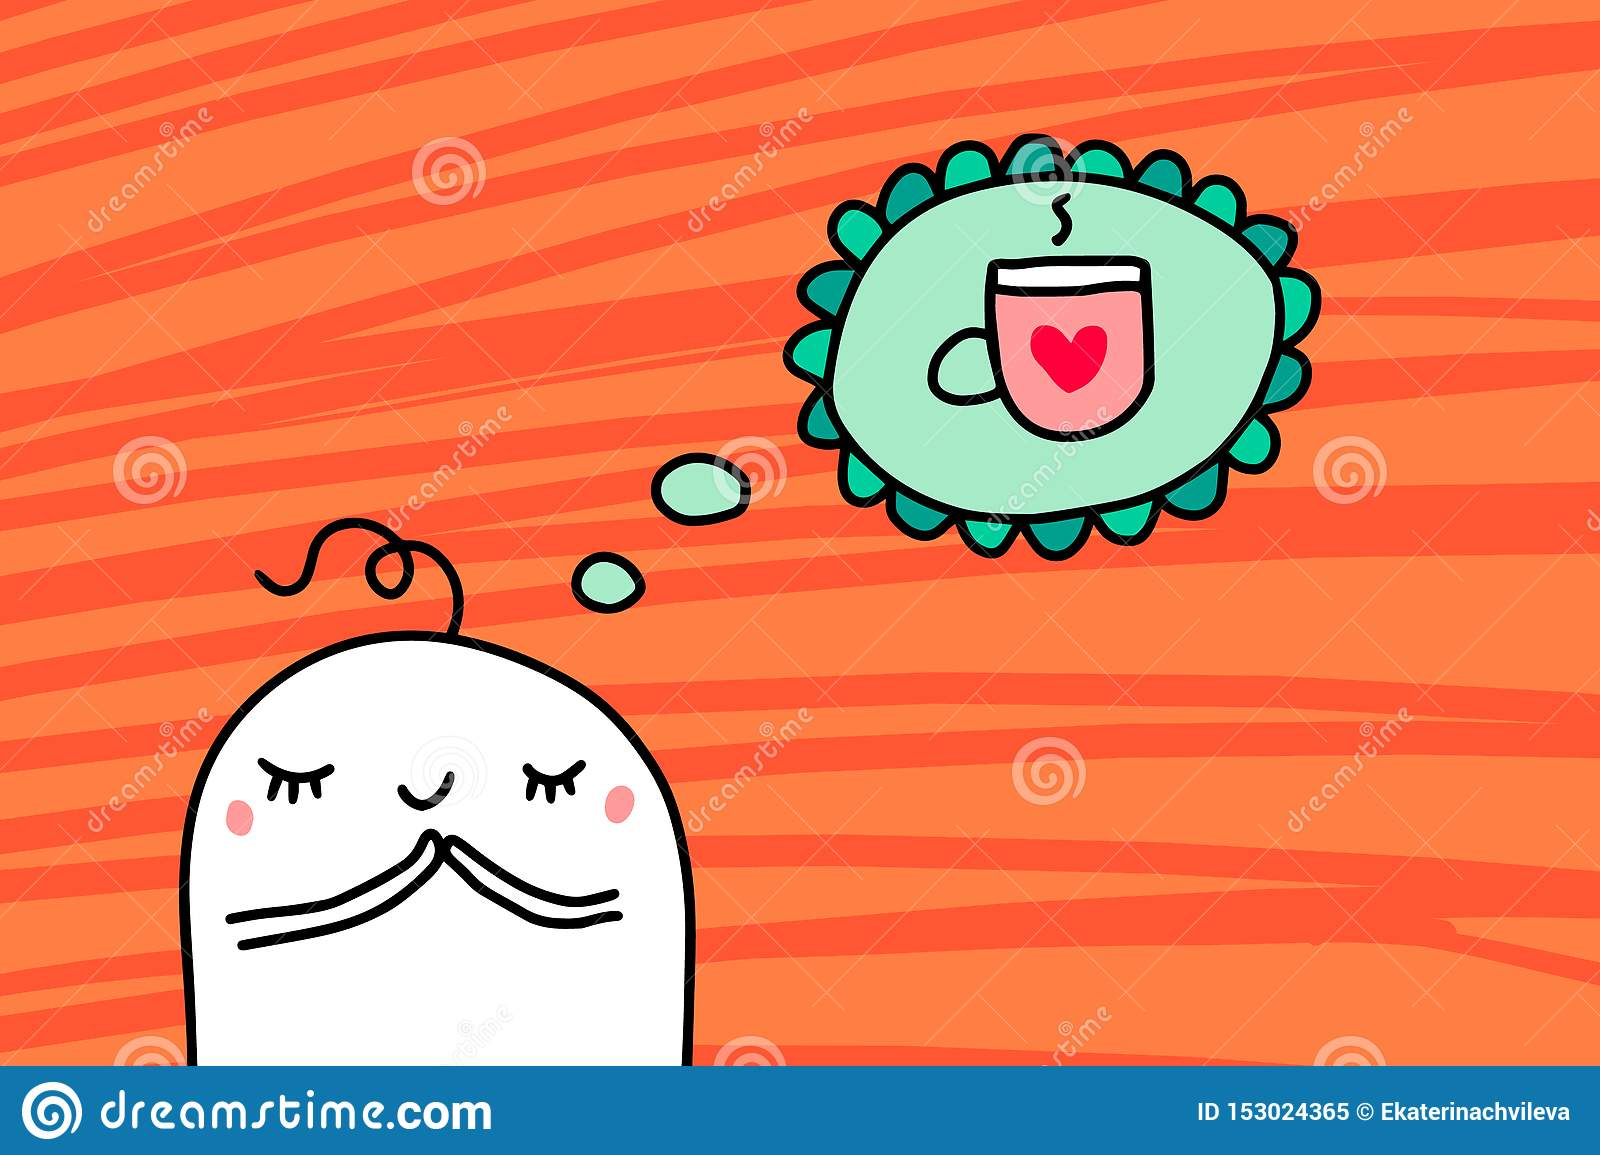 Cartoon man dreaming about cup of hot coffee hand drawn vector illustration on orange textured background